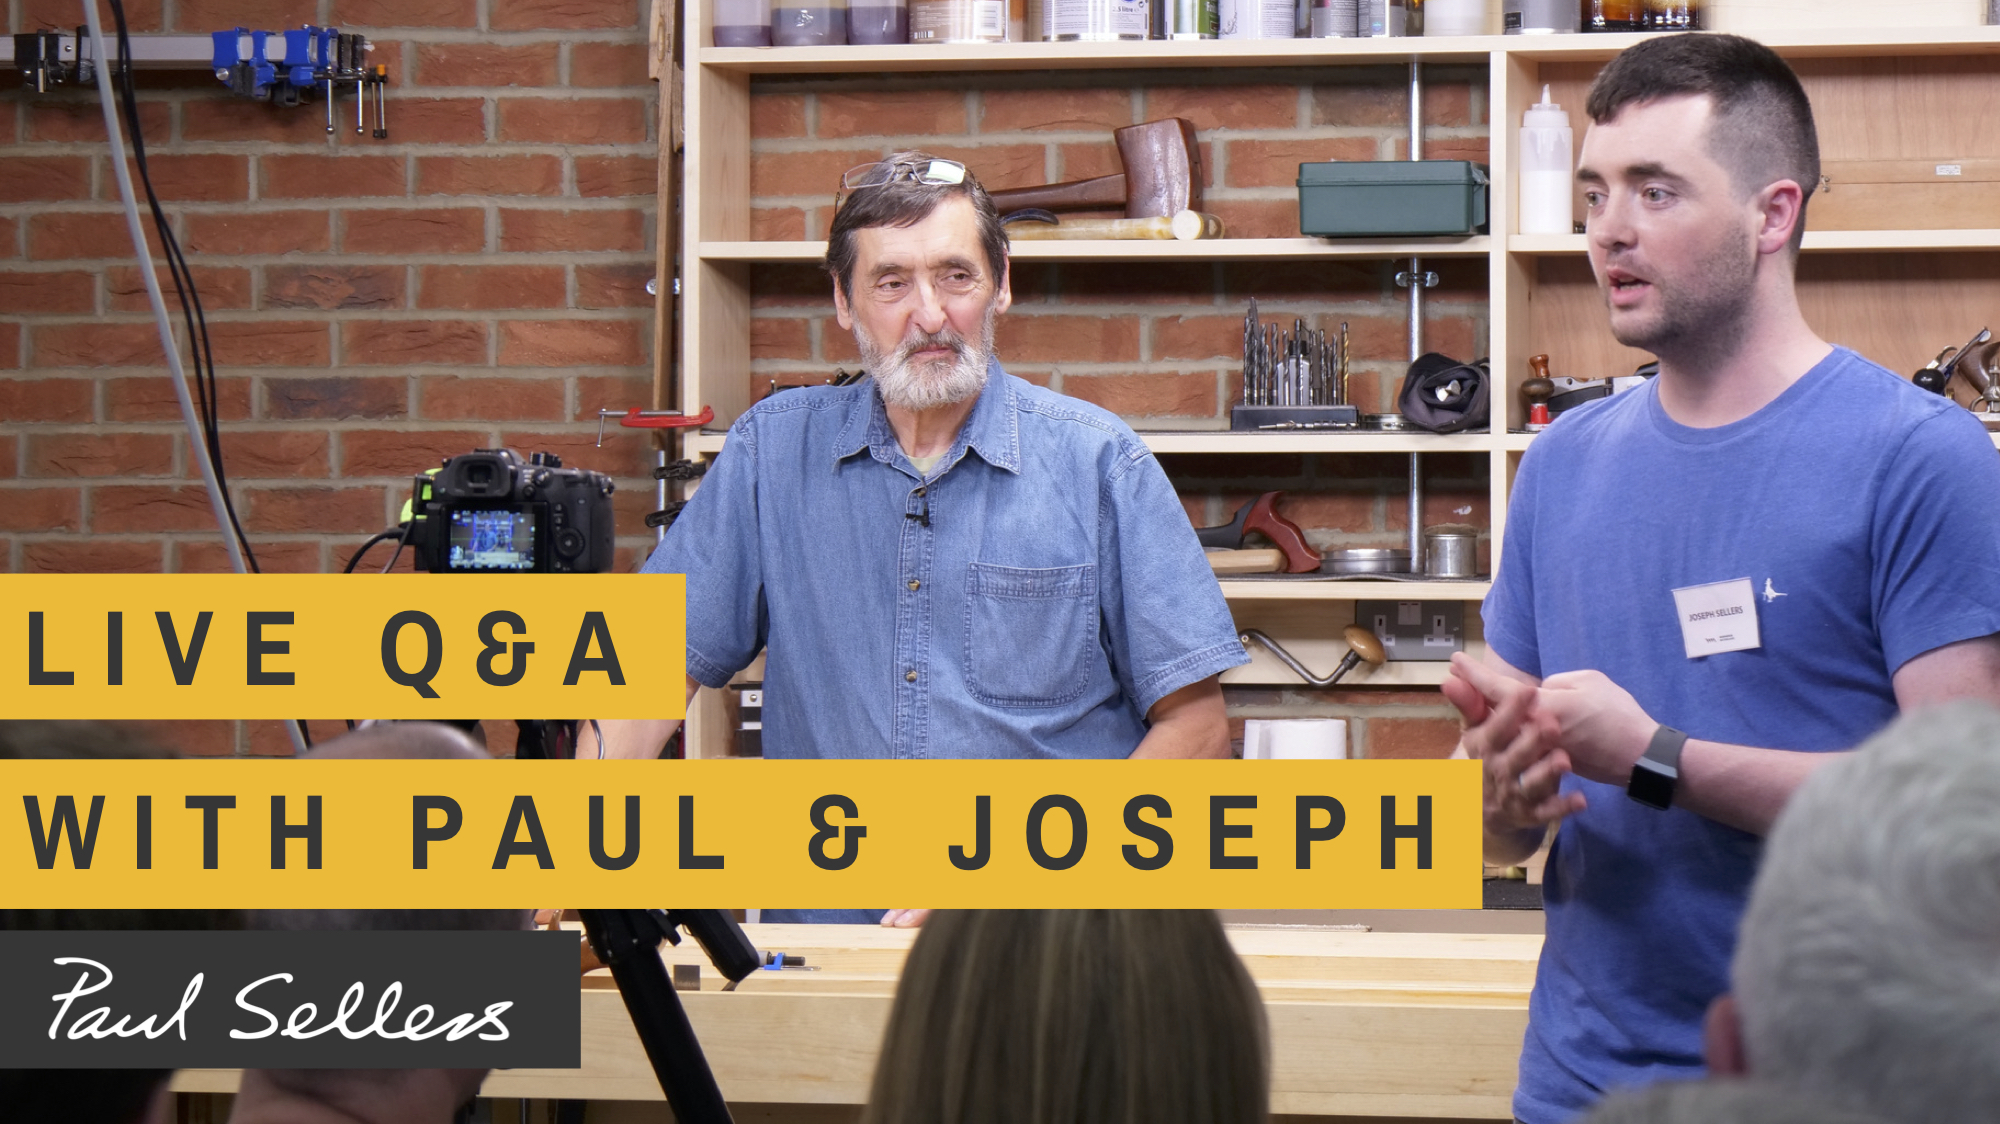 YouTube Q&A with Joseph and I - Paul Sellers' Blog